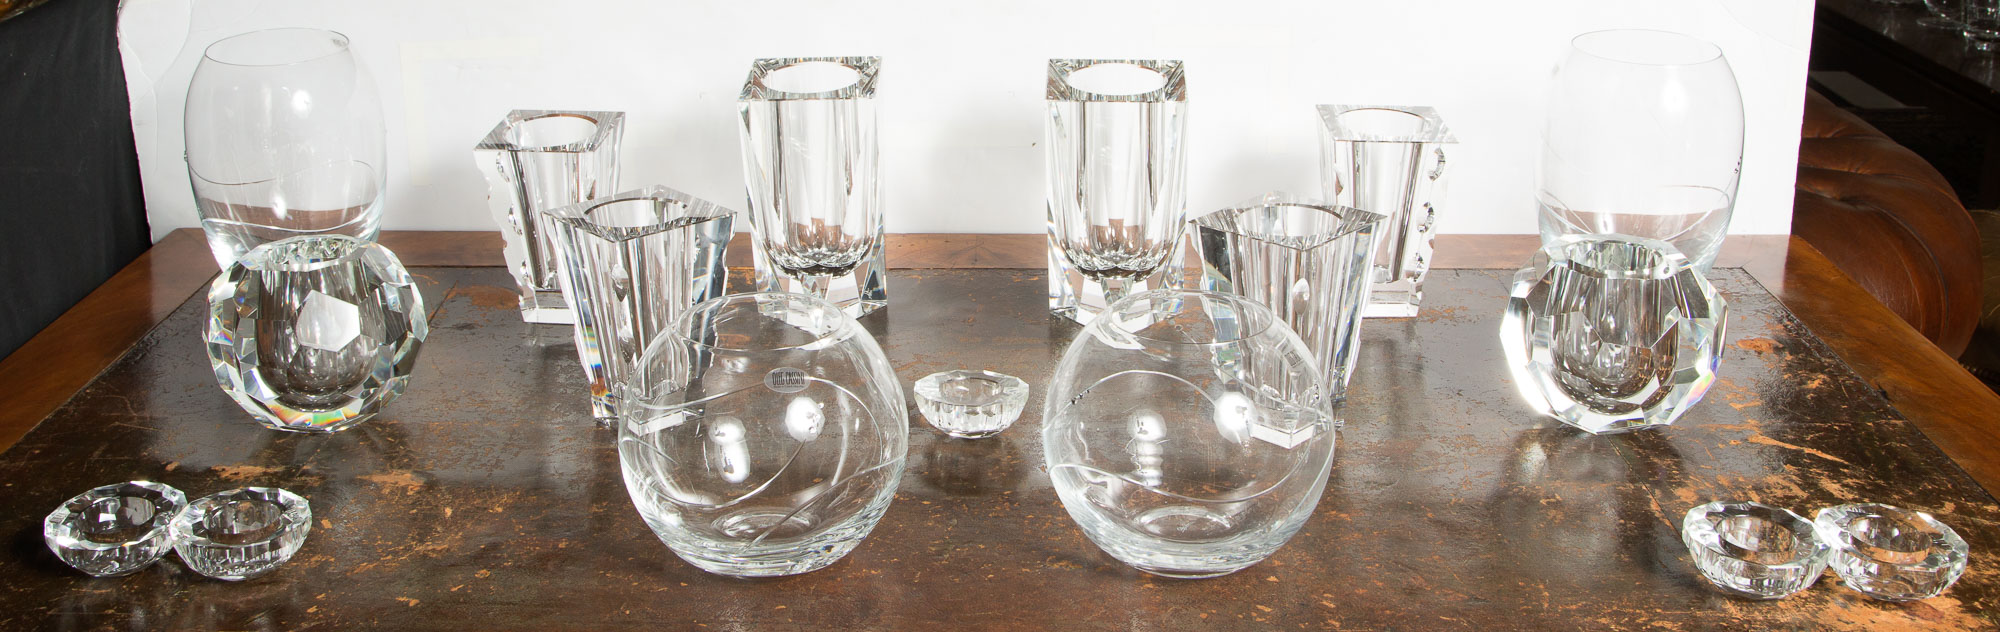 Lot image - Miscellaneous Group of Oleg Cassini Glass Table Articles